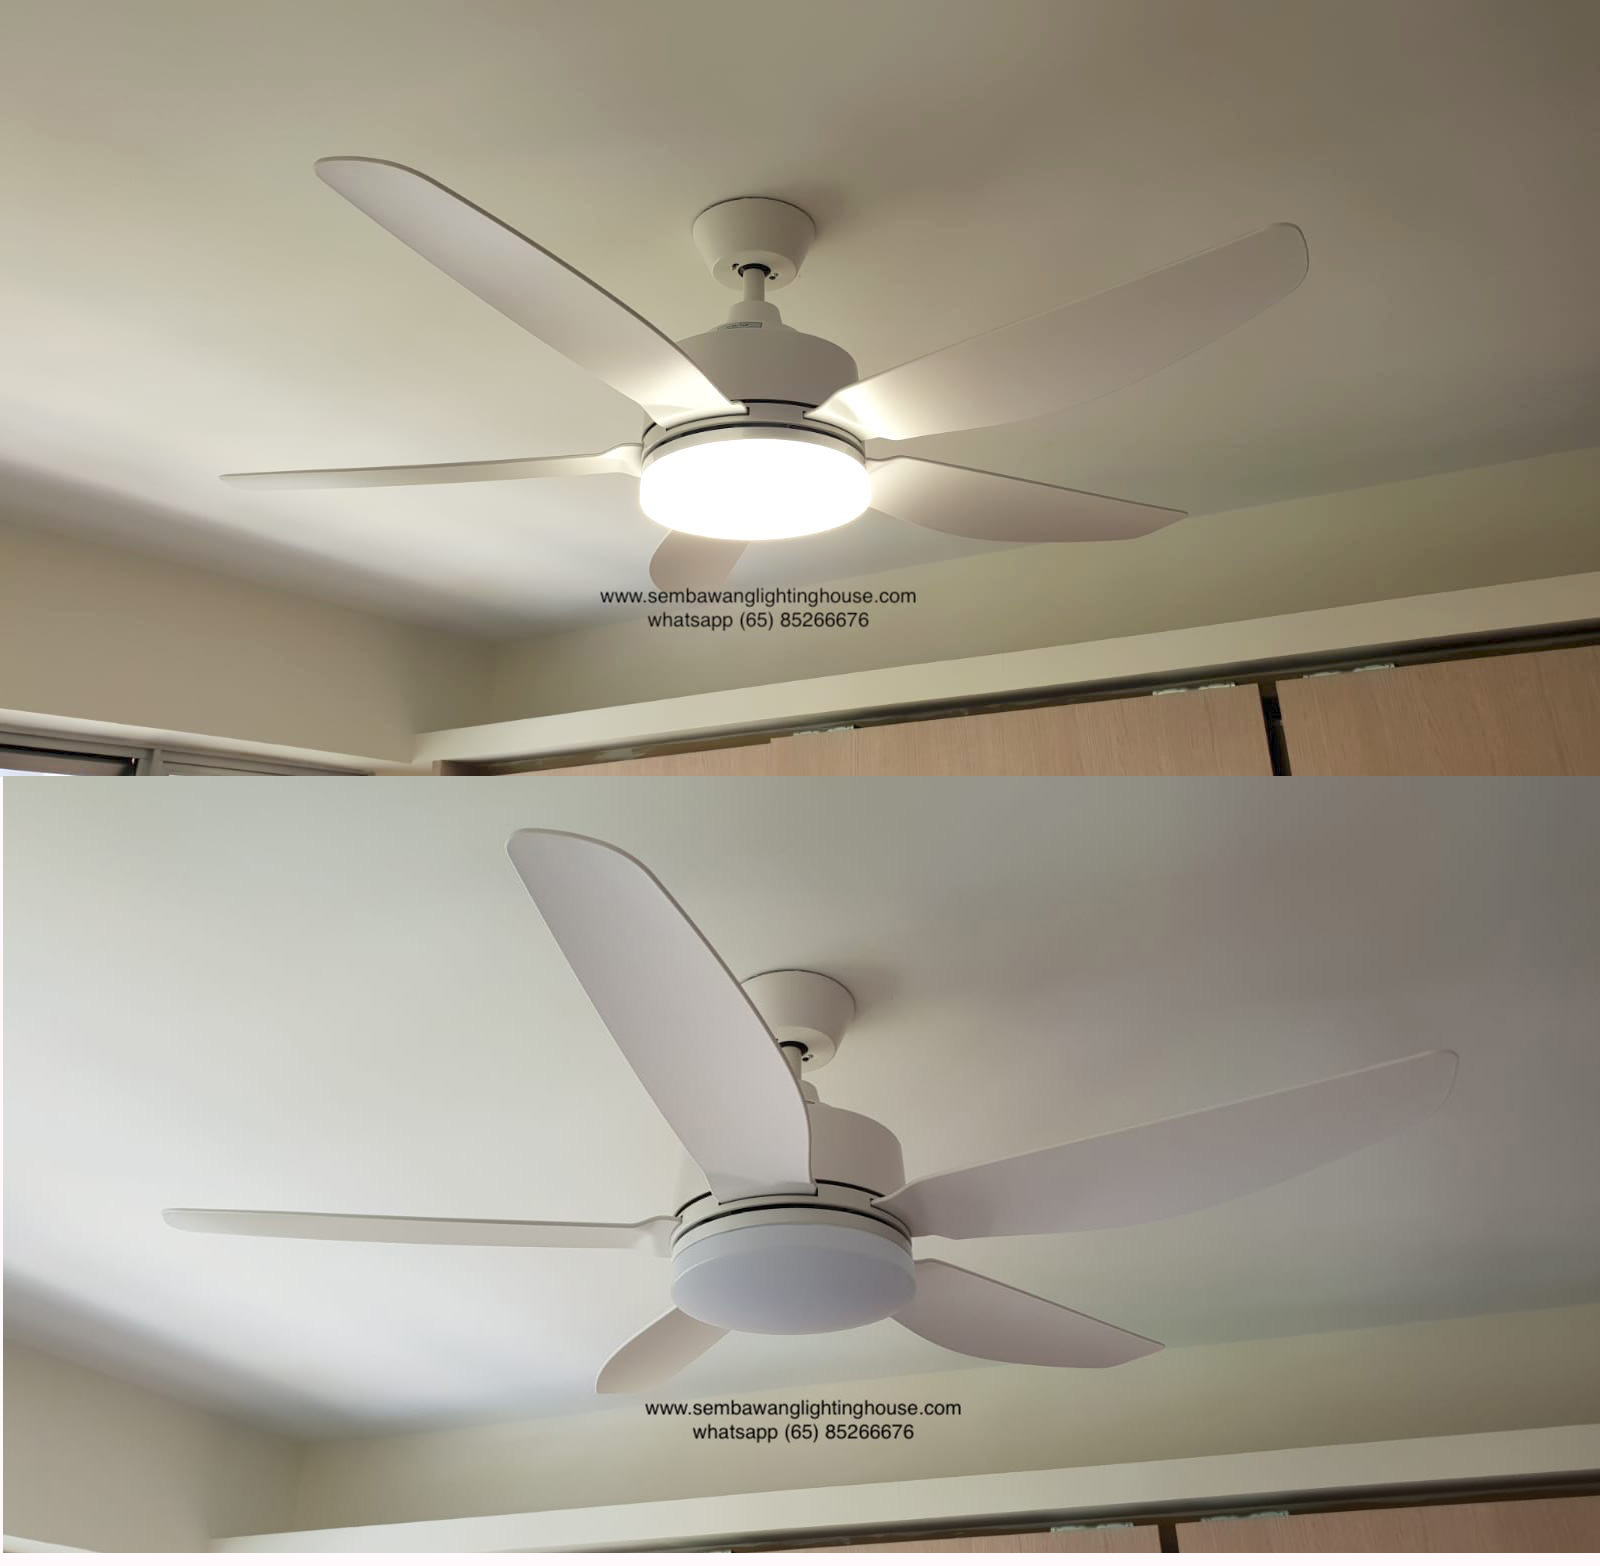 crestar-airis-ceiling-fan-sample-sembawang-lighting-house-white-06.jpg